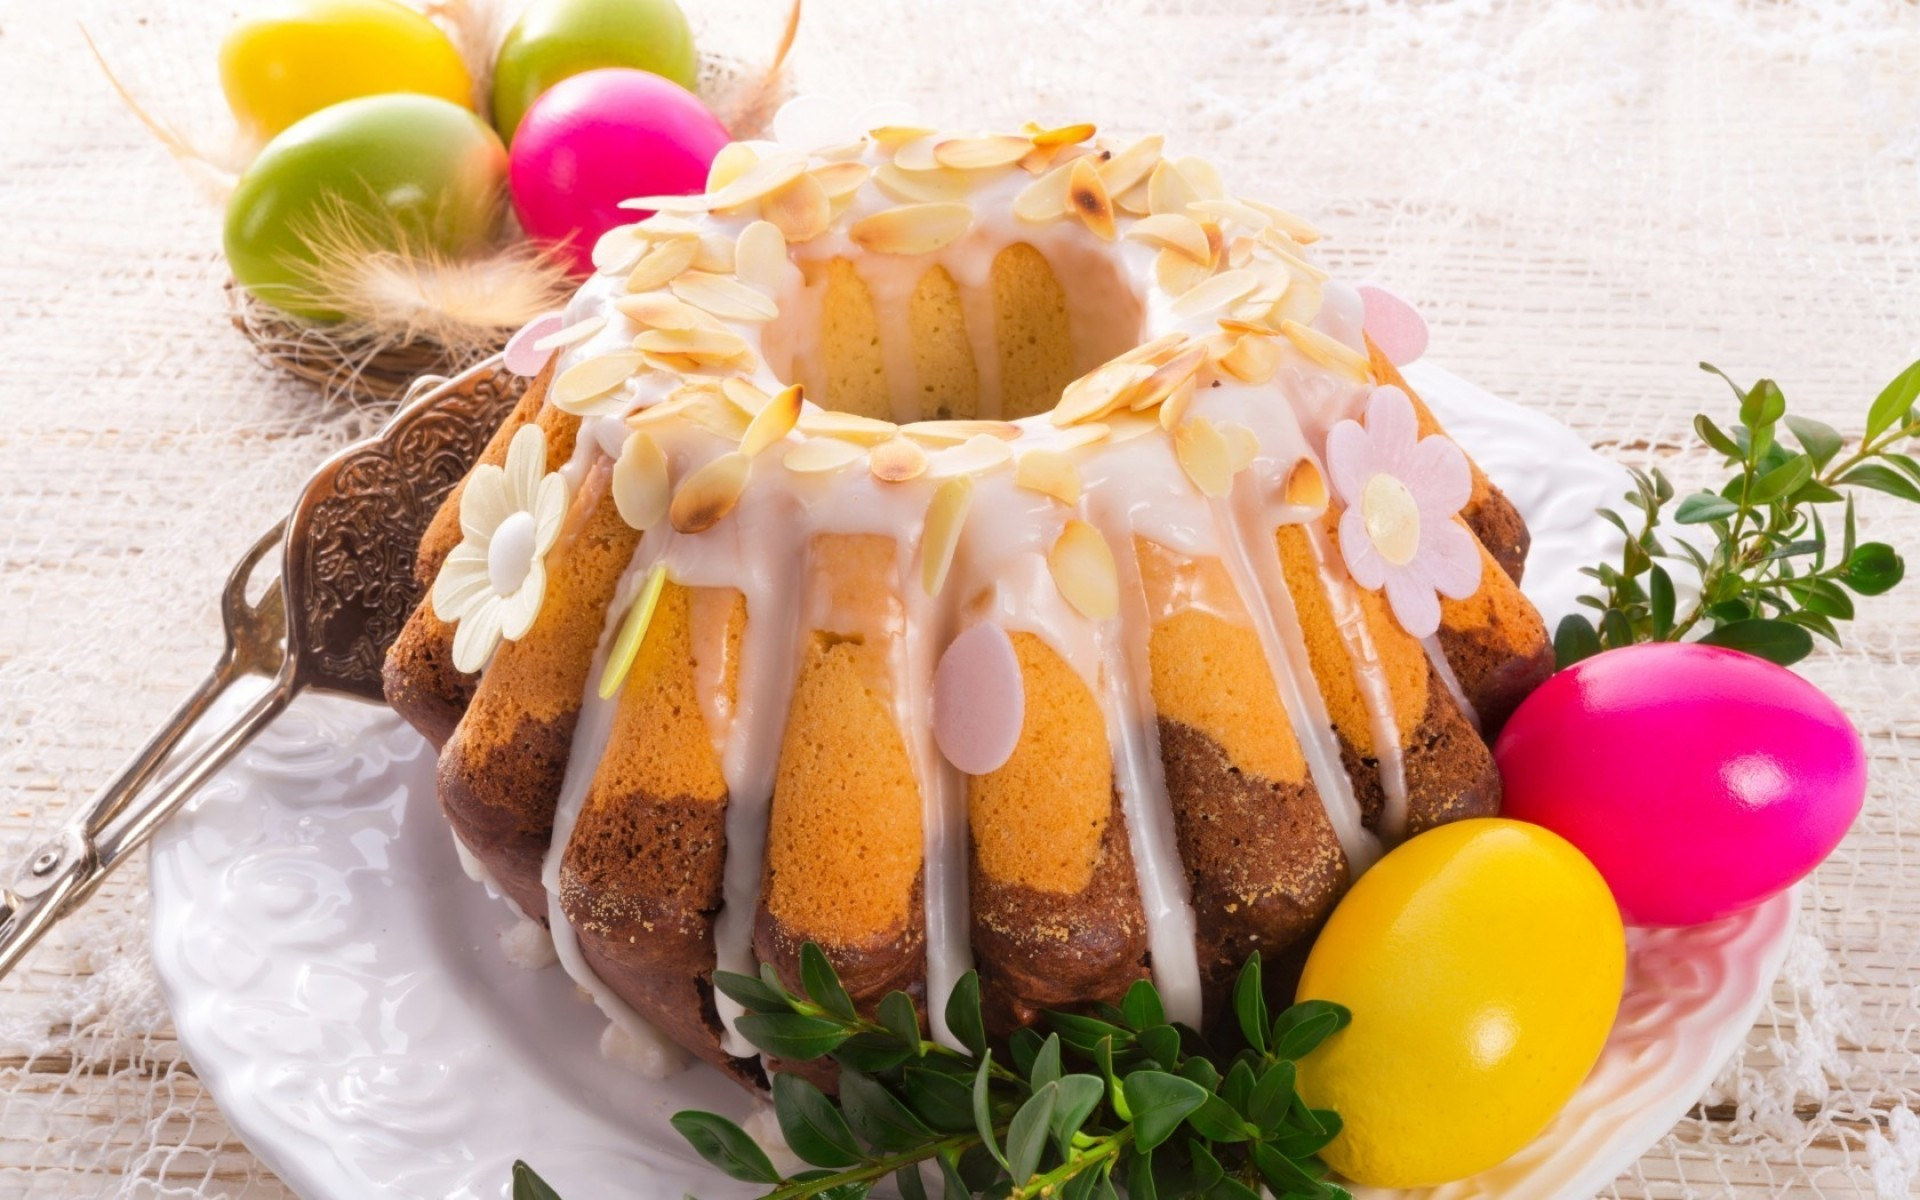 easter food delicious sweet chocolate cake traditional sugar celebration close-up epicure plate fruit refreshment decoration tasty pastry